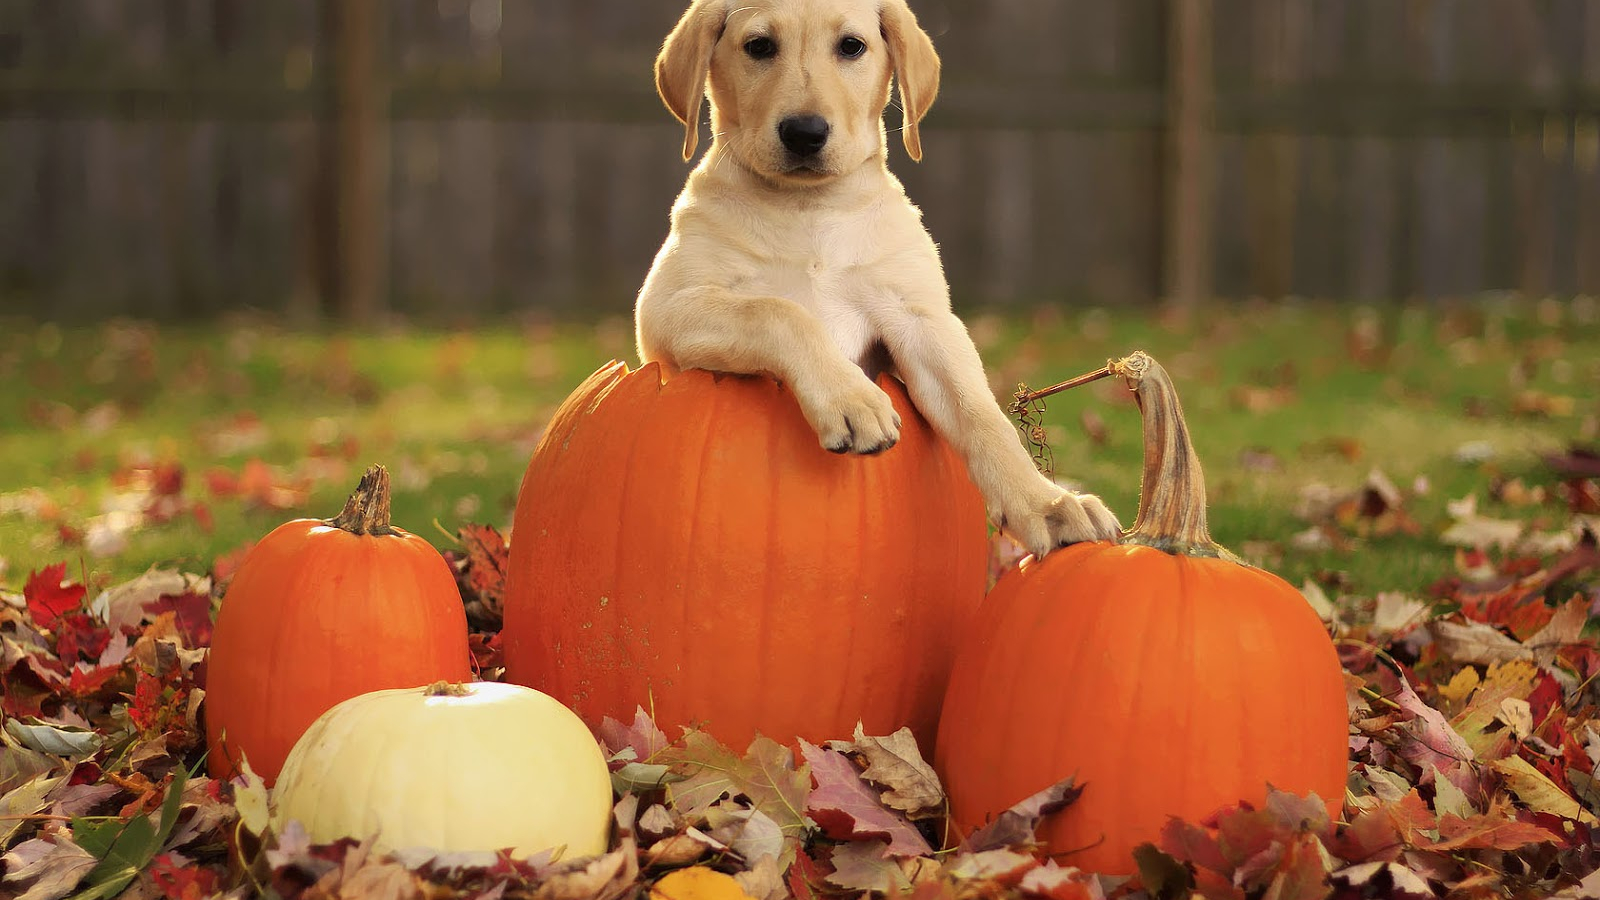 Free Download Autumn Wallpaper With A Dog In A Halloween Pumpkin Hd Dog Background 1600x1000 For Your Desktop Mobile Tablet Explore 39 Fall Wallpaper With Animals Funny Animal Wallpapers